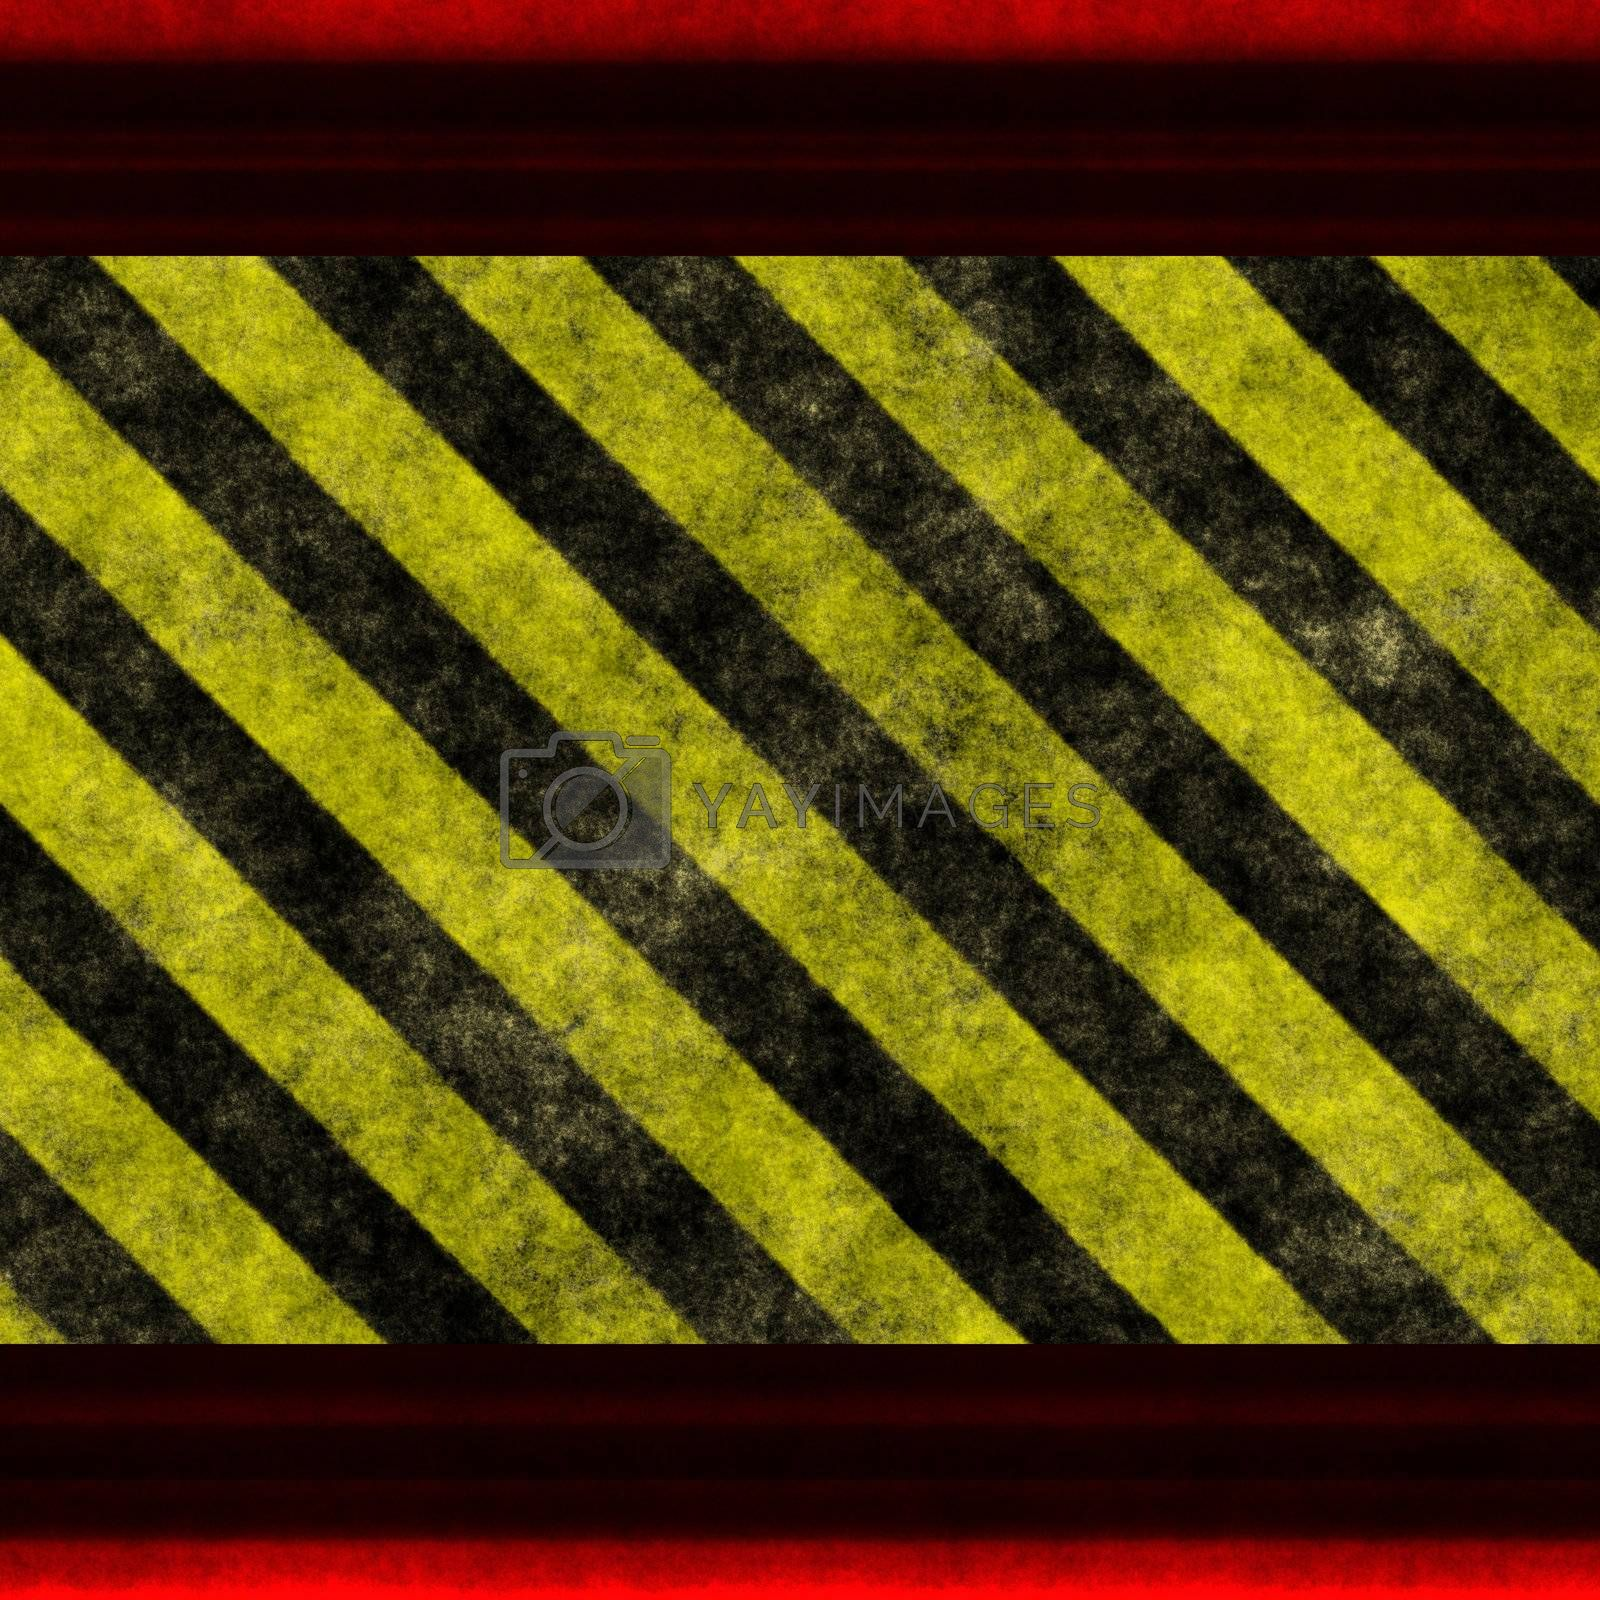 Black and yellow warning / hazard background with red frame